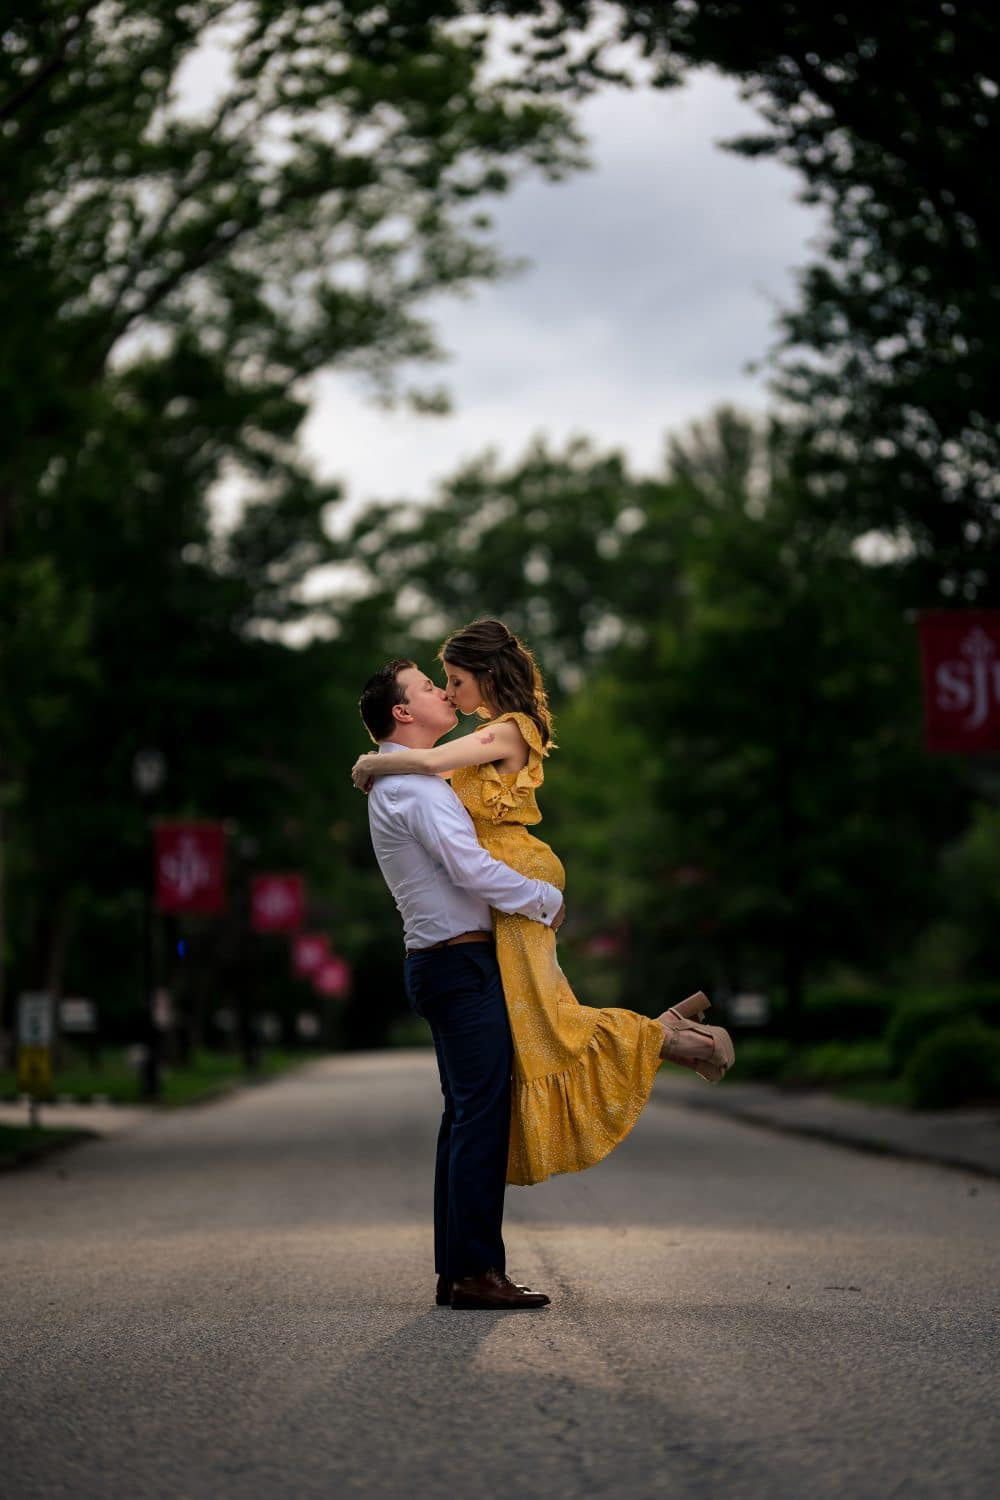 Woman jumped in man's arms with joy in PA Engagement Shoot Shot By John Ryan